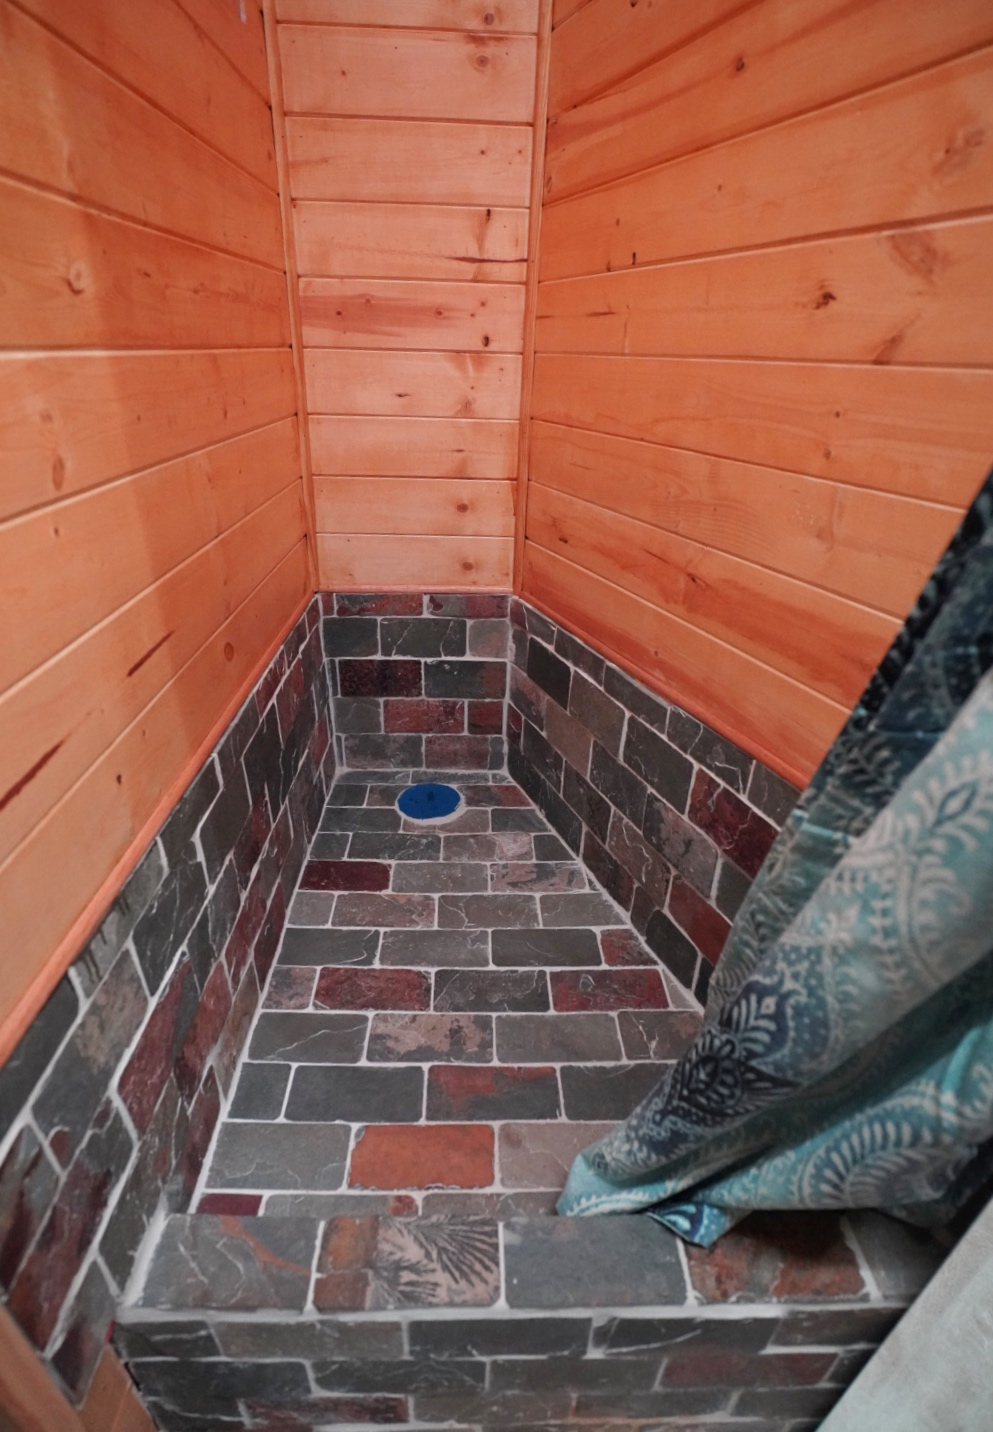 Finshed after sealing the walls and grout.  -